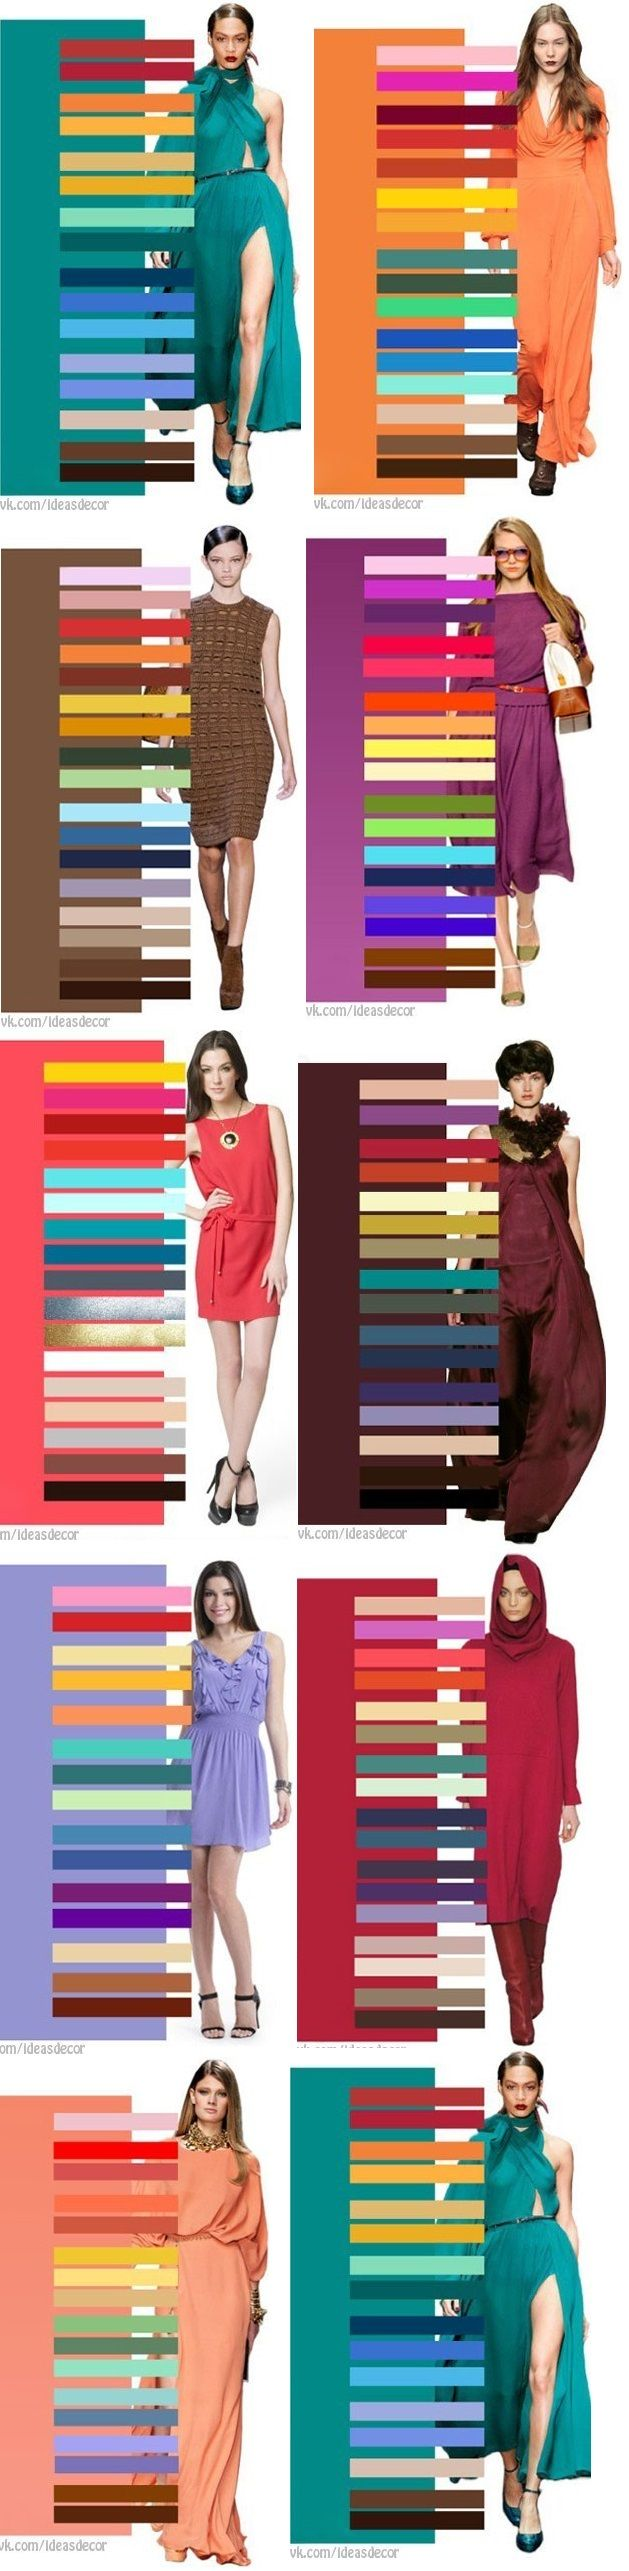 Great Color Combinations | Fashion trends